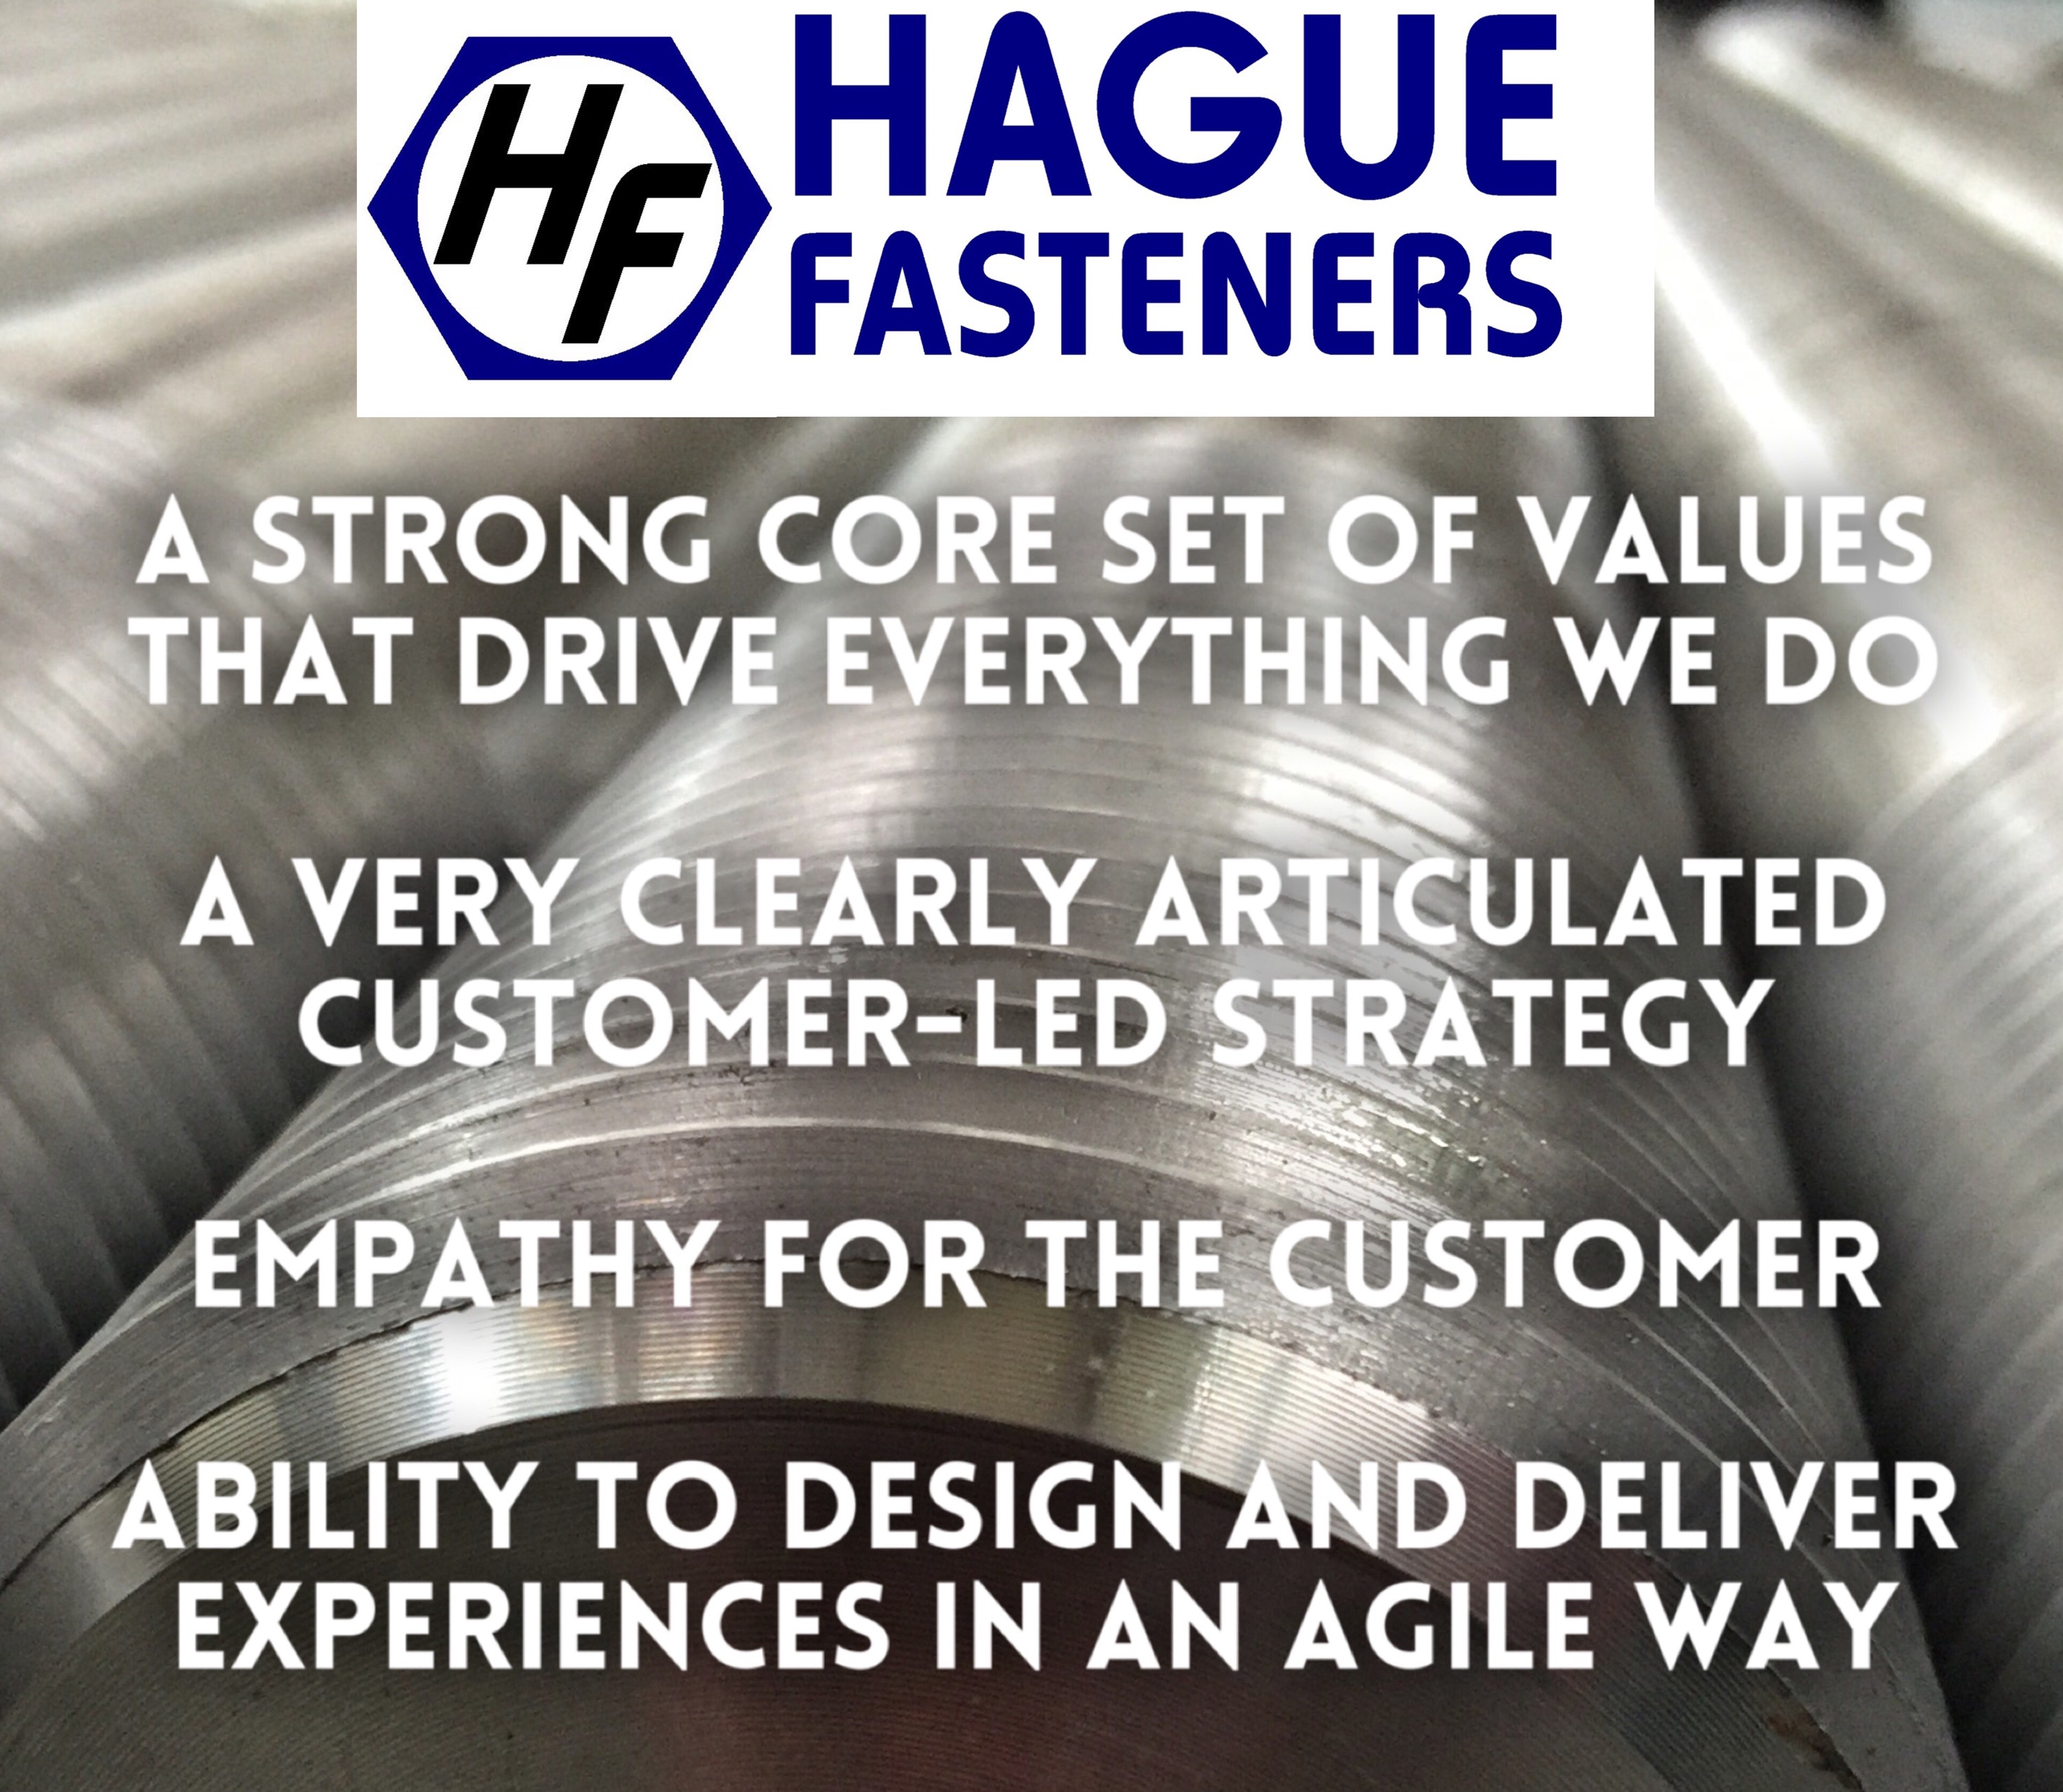 Fastener Manufacturers Archives - Hague Fasteners Limited